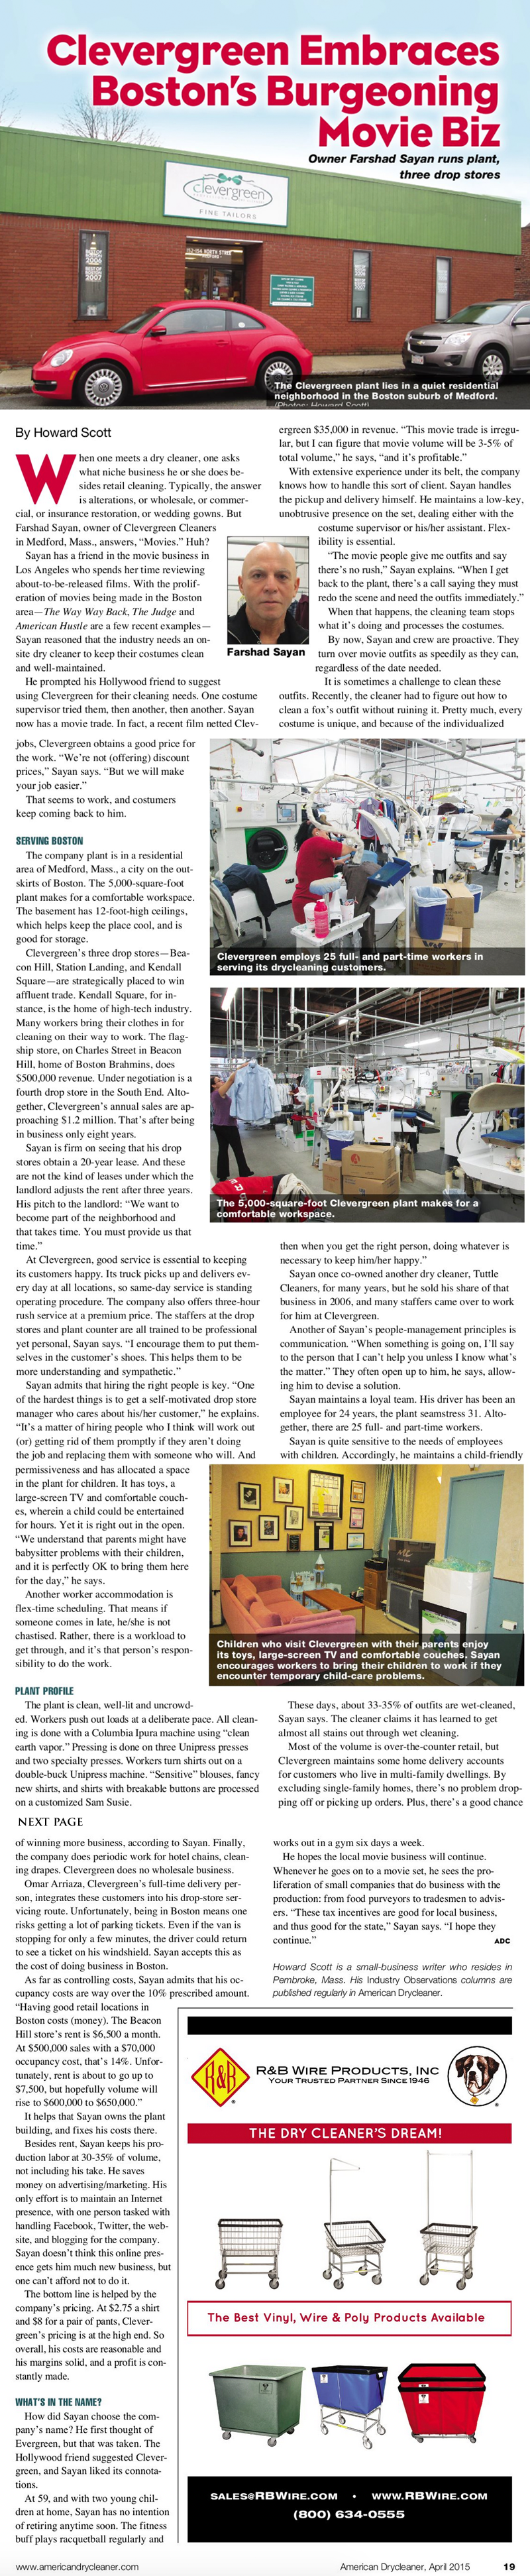 American Dry Cleaner Article about Boston locally owned Dry Cleaner Clevergreen Cleaners